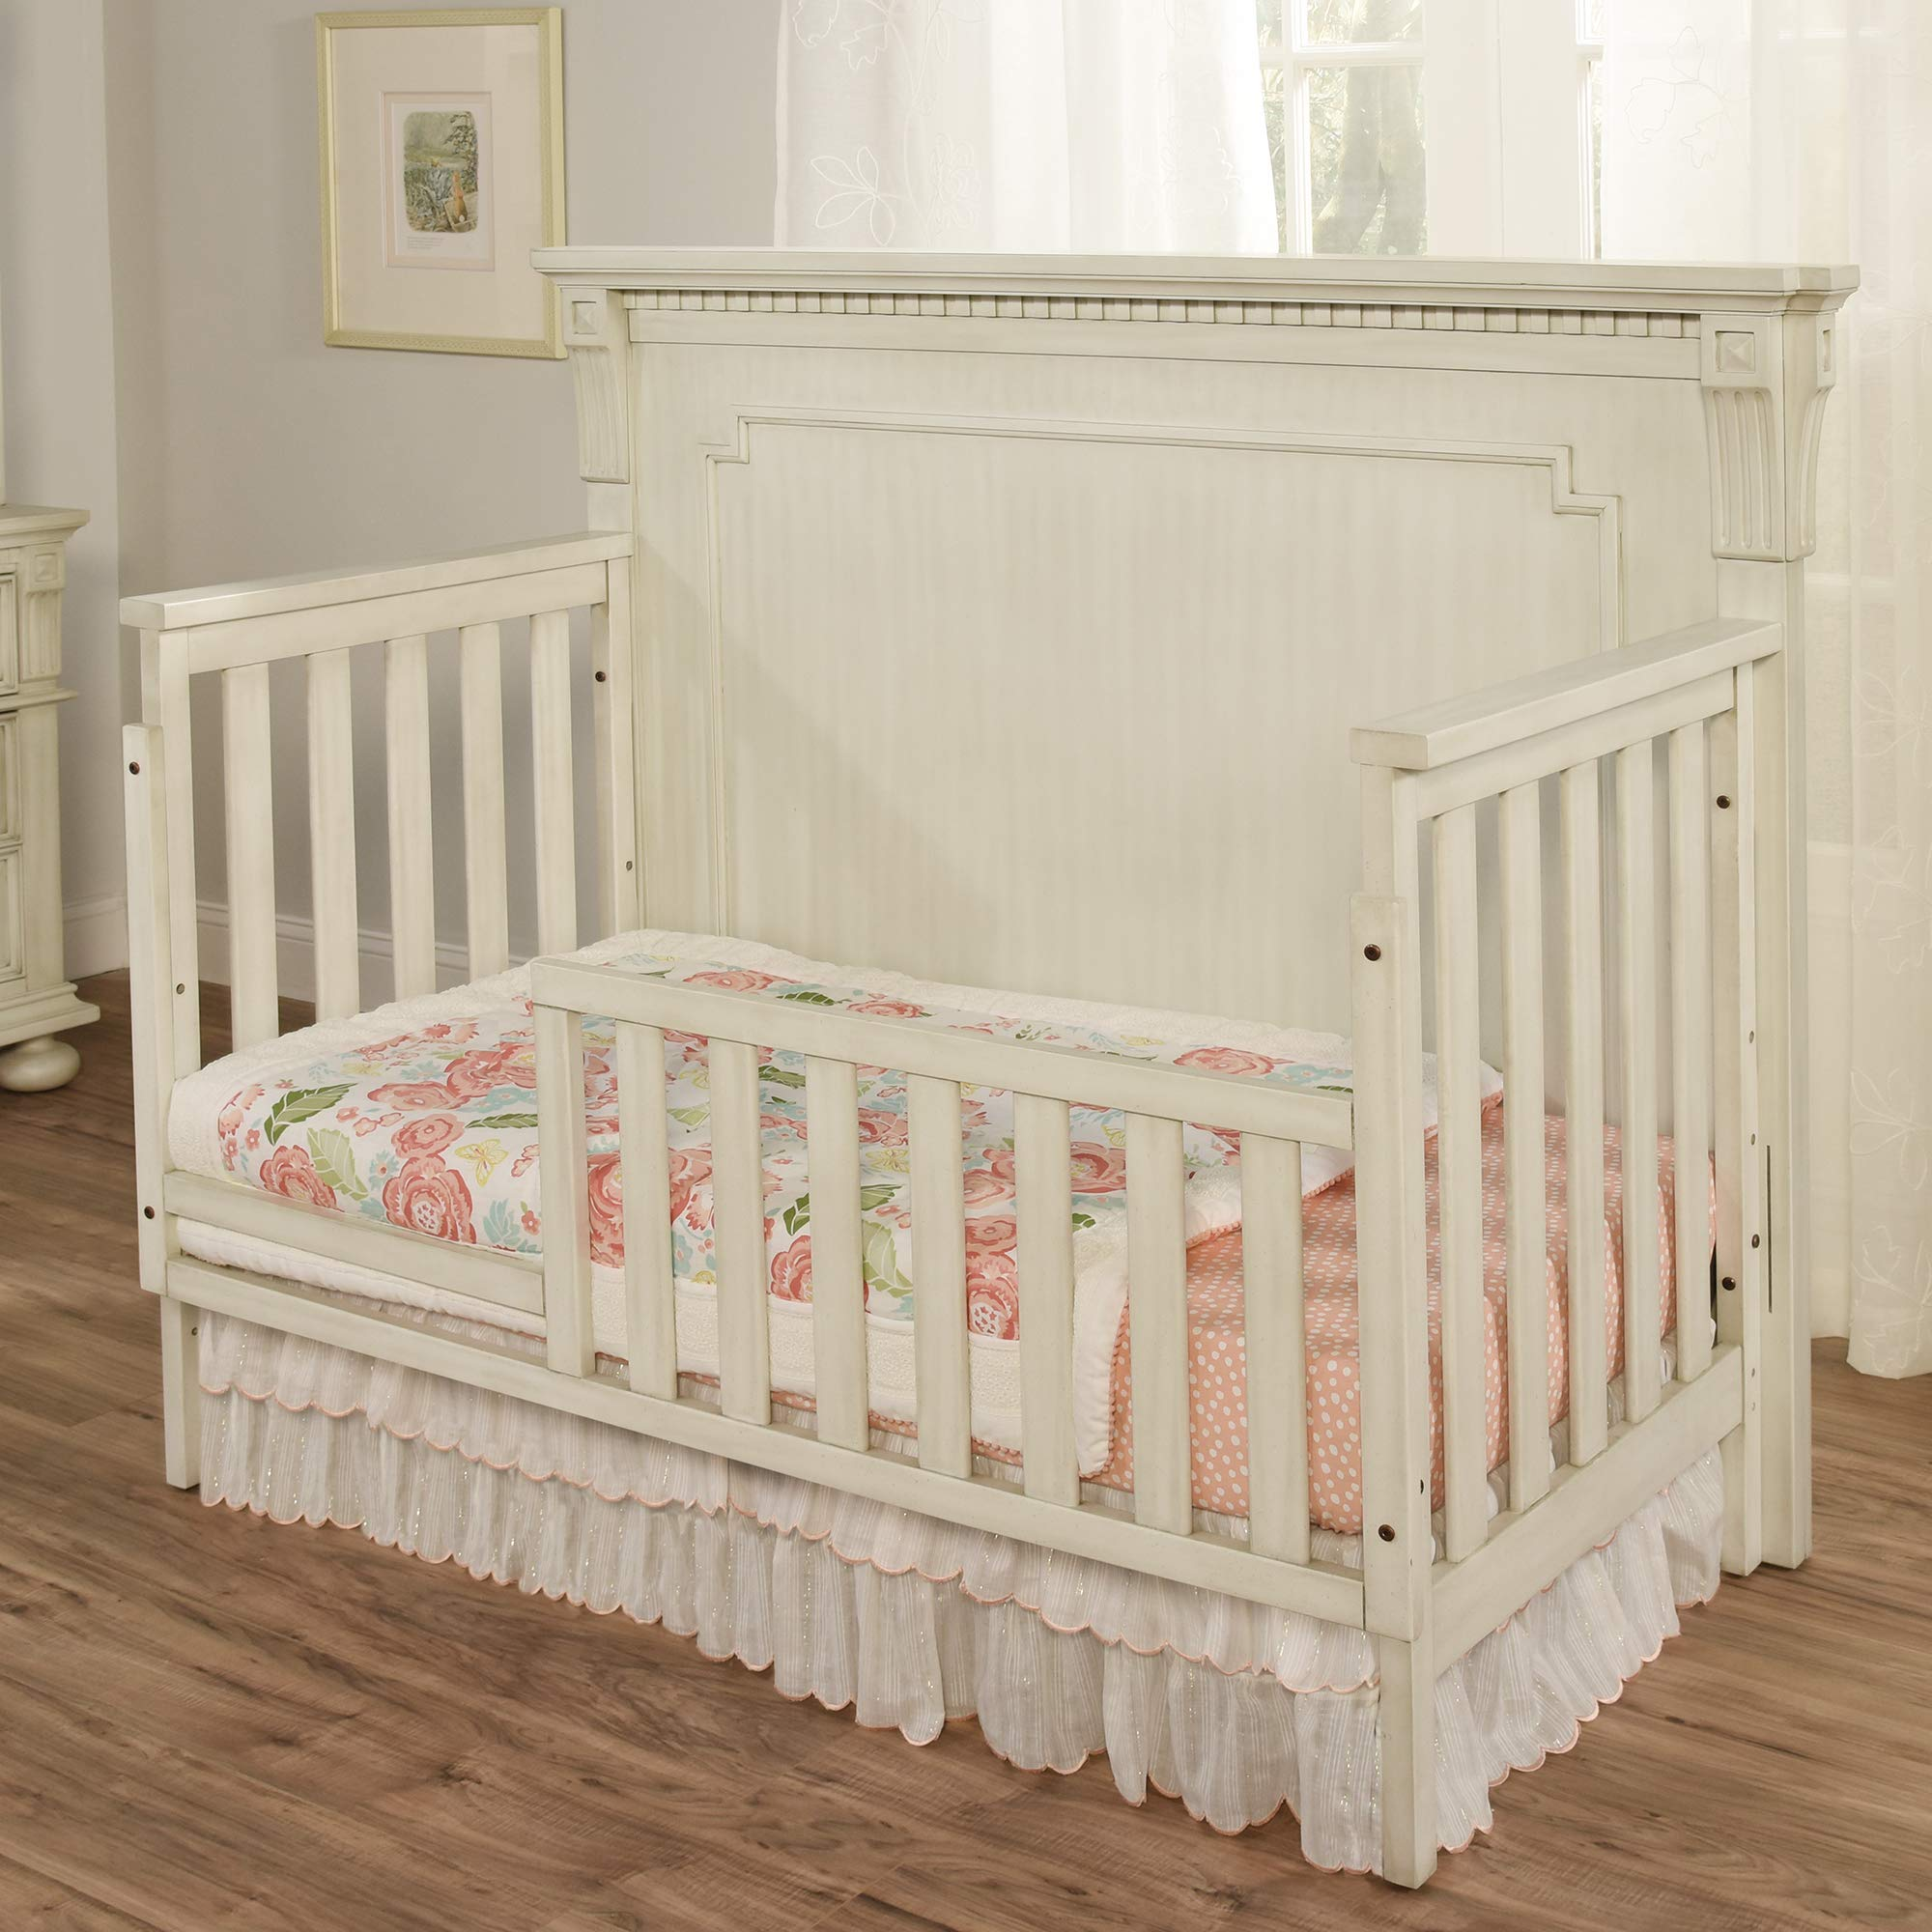 Oxford Baby Mid Century Claremont Guard Rail, Antique White by Oxford Baby (Image #2)